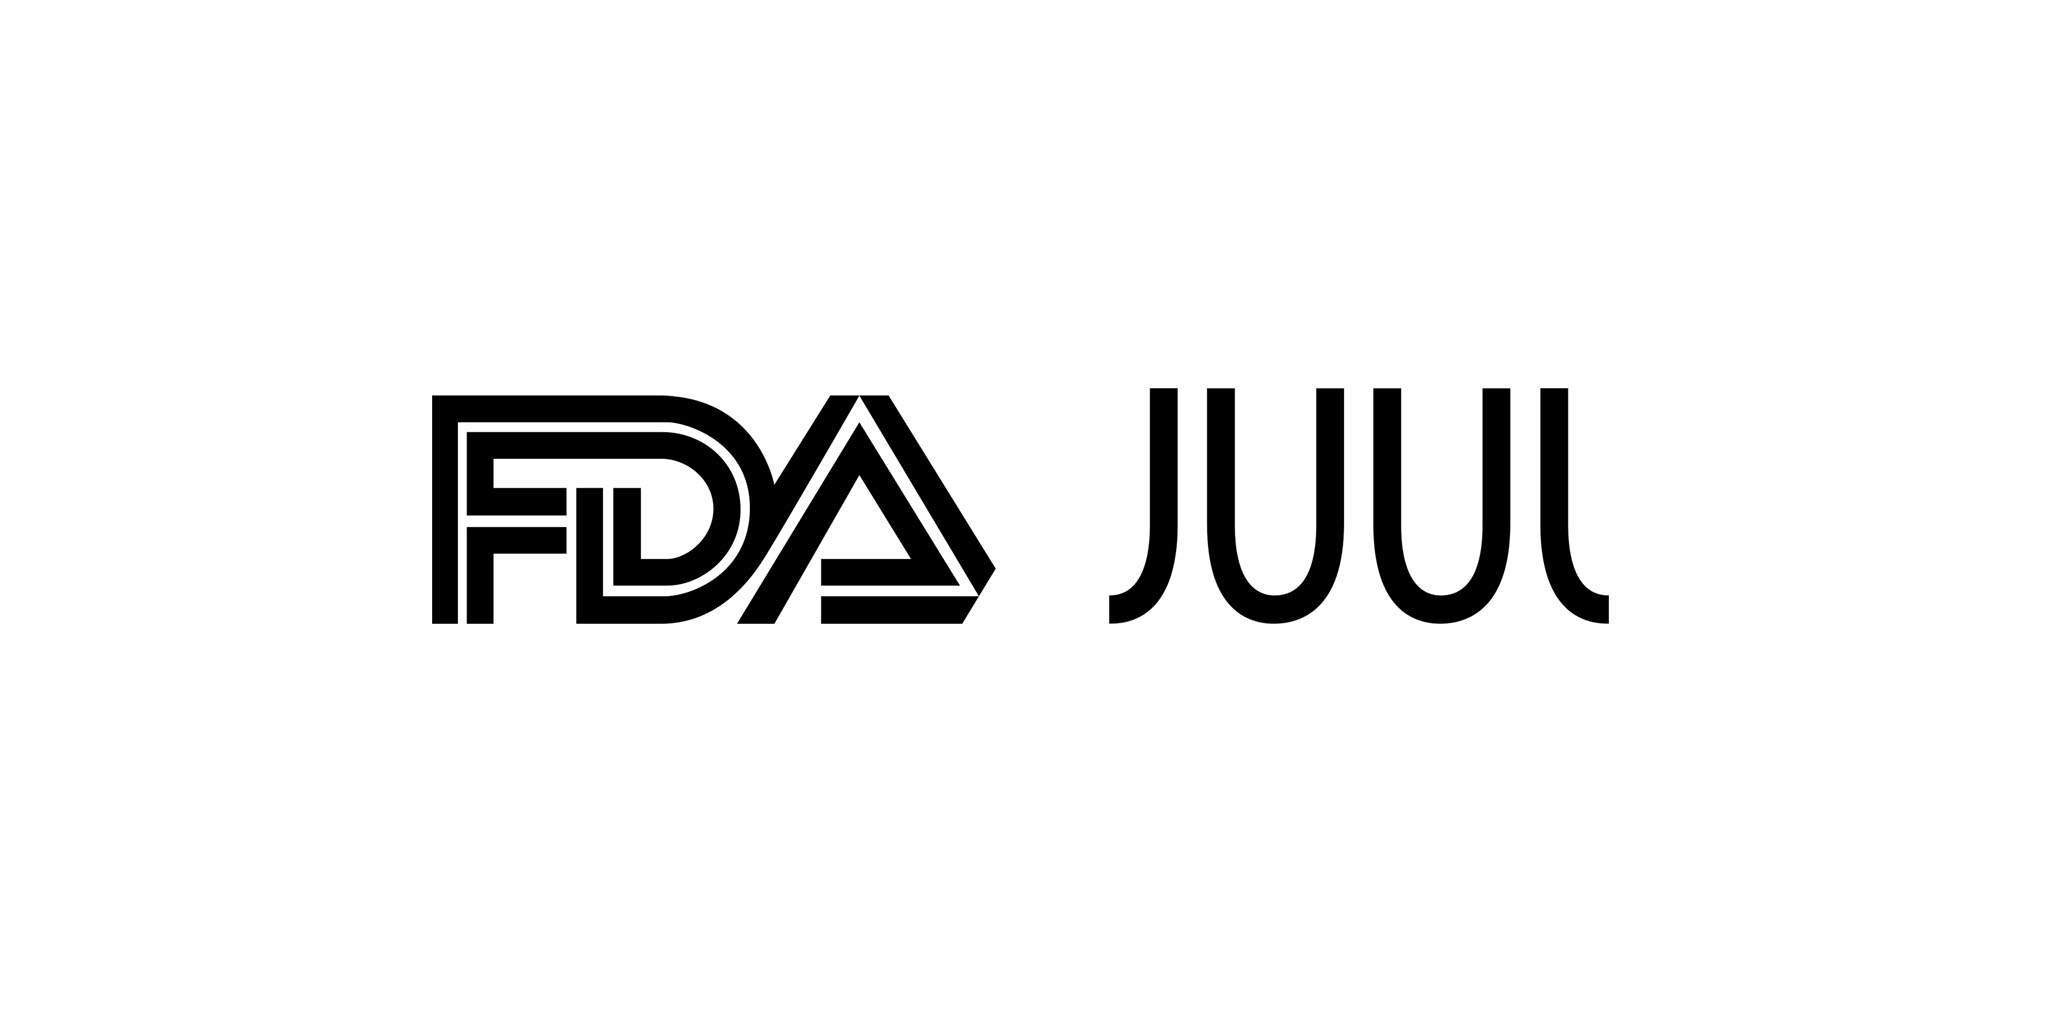 FDA is planning to ban menthol cigarettes while pushing on Juul and vaping while Juul is going strong after replicas and copycats